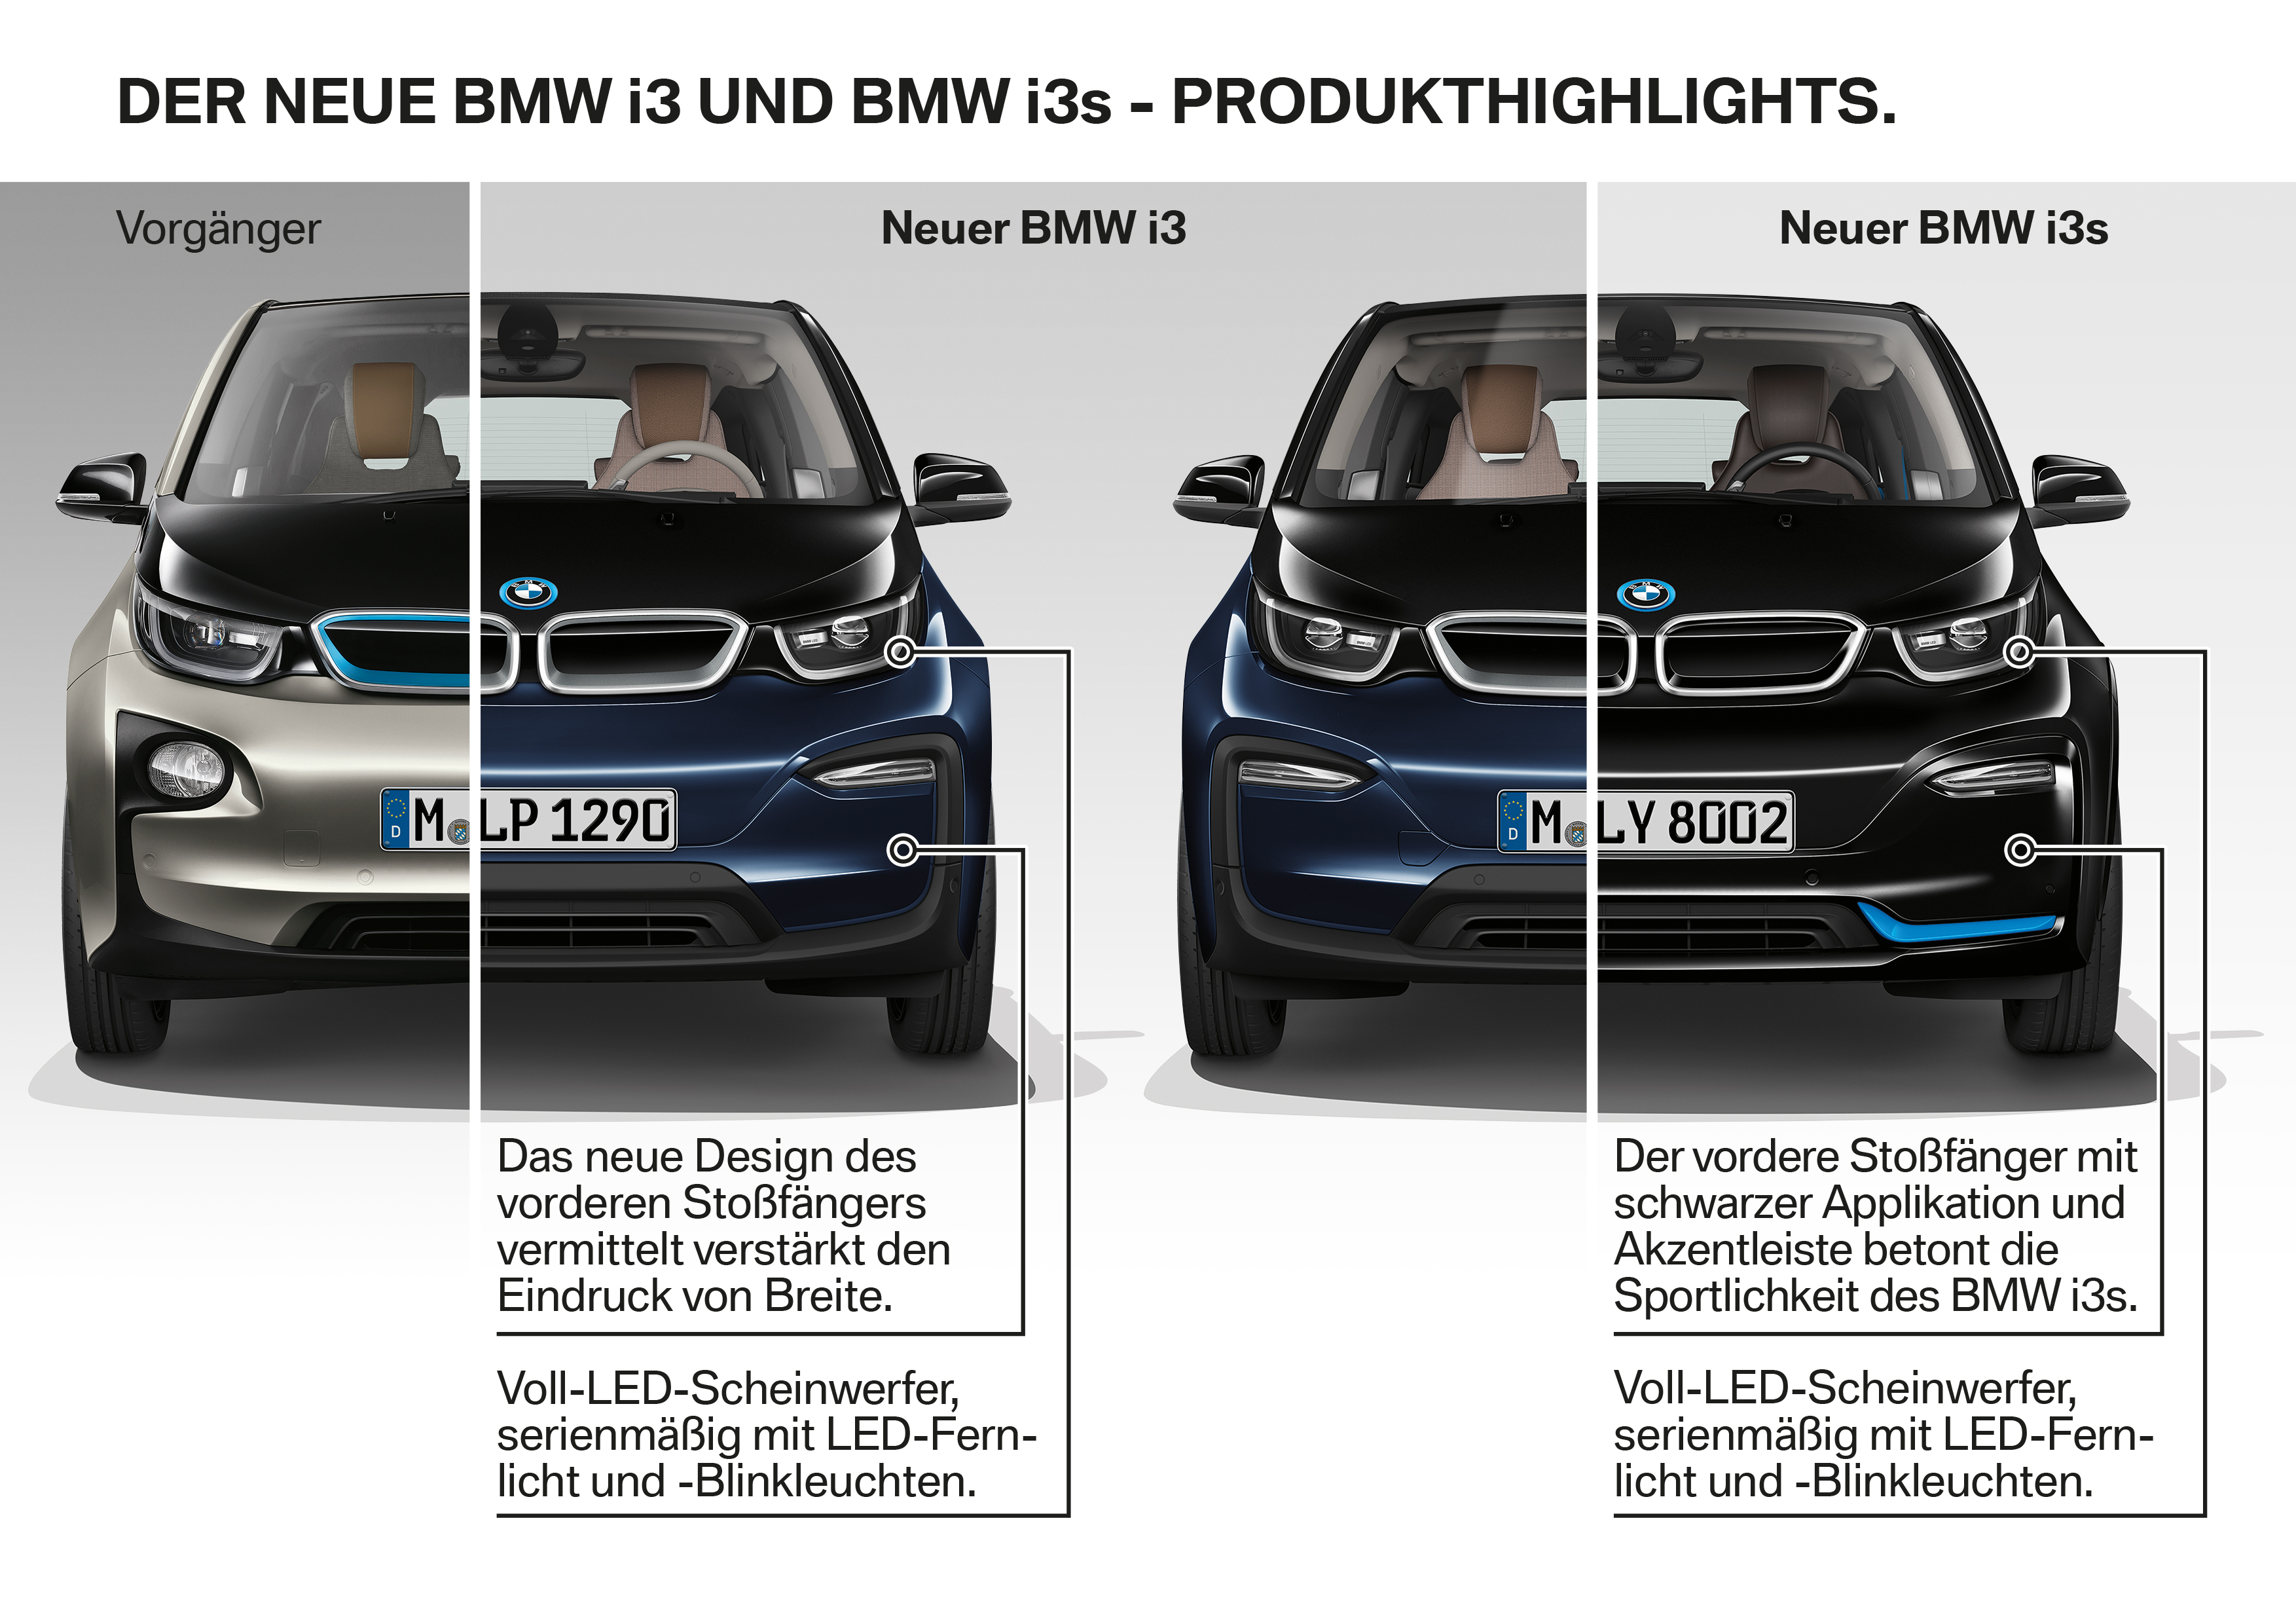 2018 Bmw I3 Unveiled With Small Design Refresh And New Sport Package